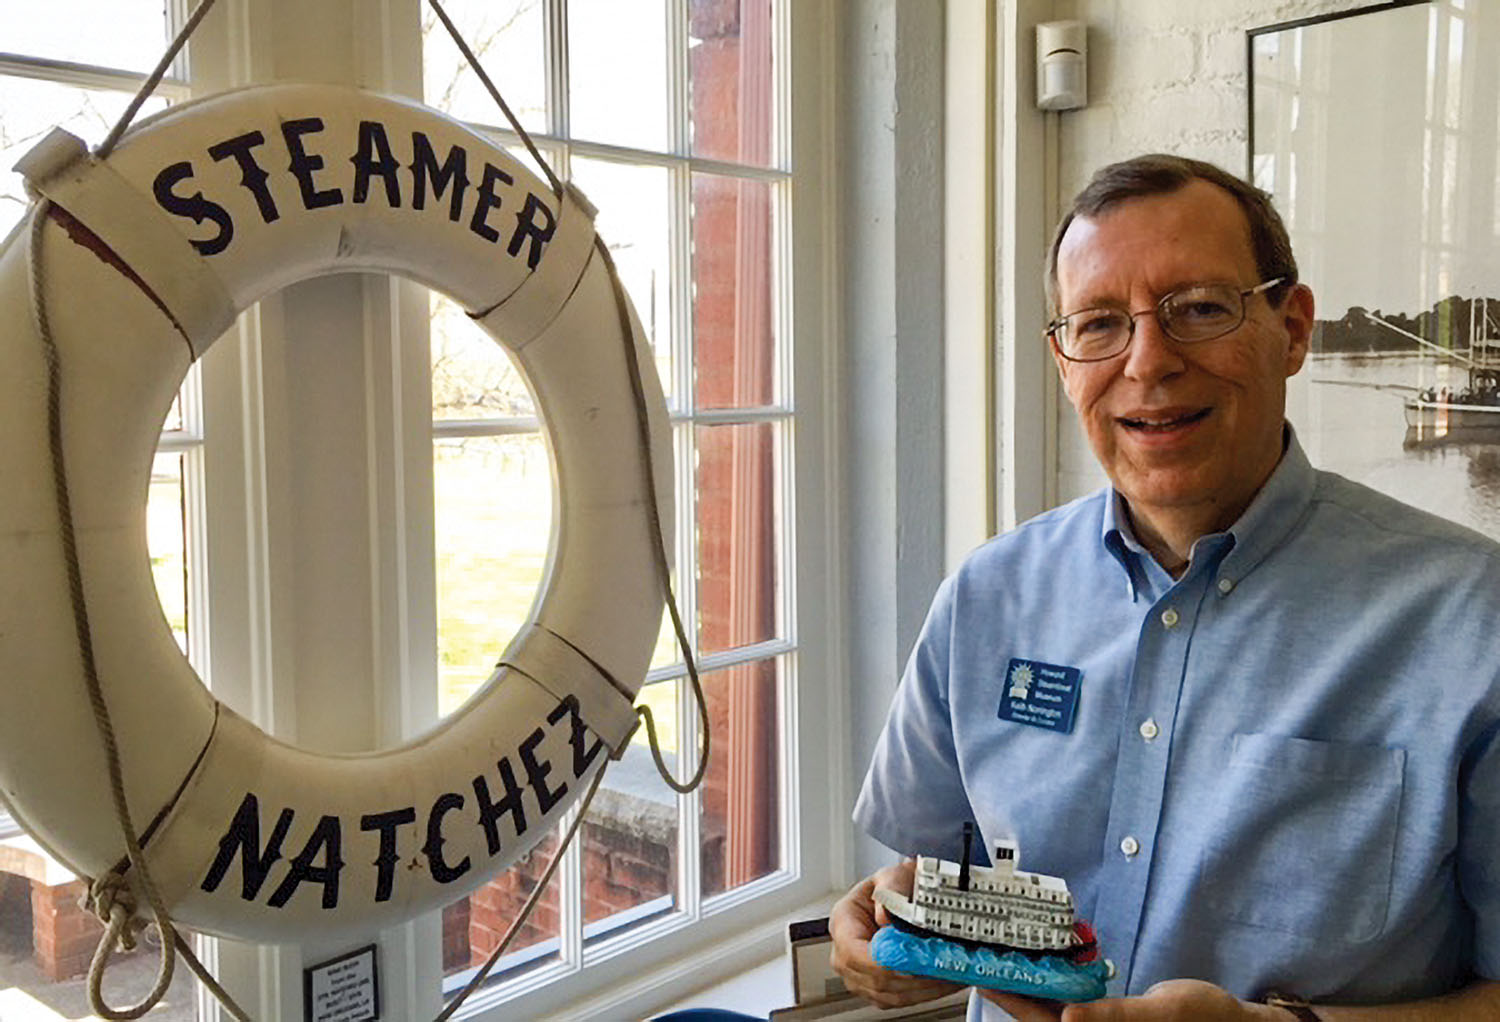 Newly retired Howard Steamboat Museum director/curator Keith Norrington poses with a model of the steamer Natchez in front of a donated ring buoy from the Natchez in 2018 at the museum. (Photo courtesy of Howard Steamboat Museum)